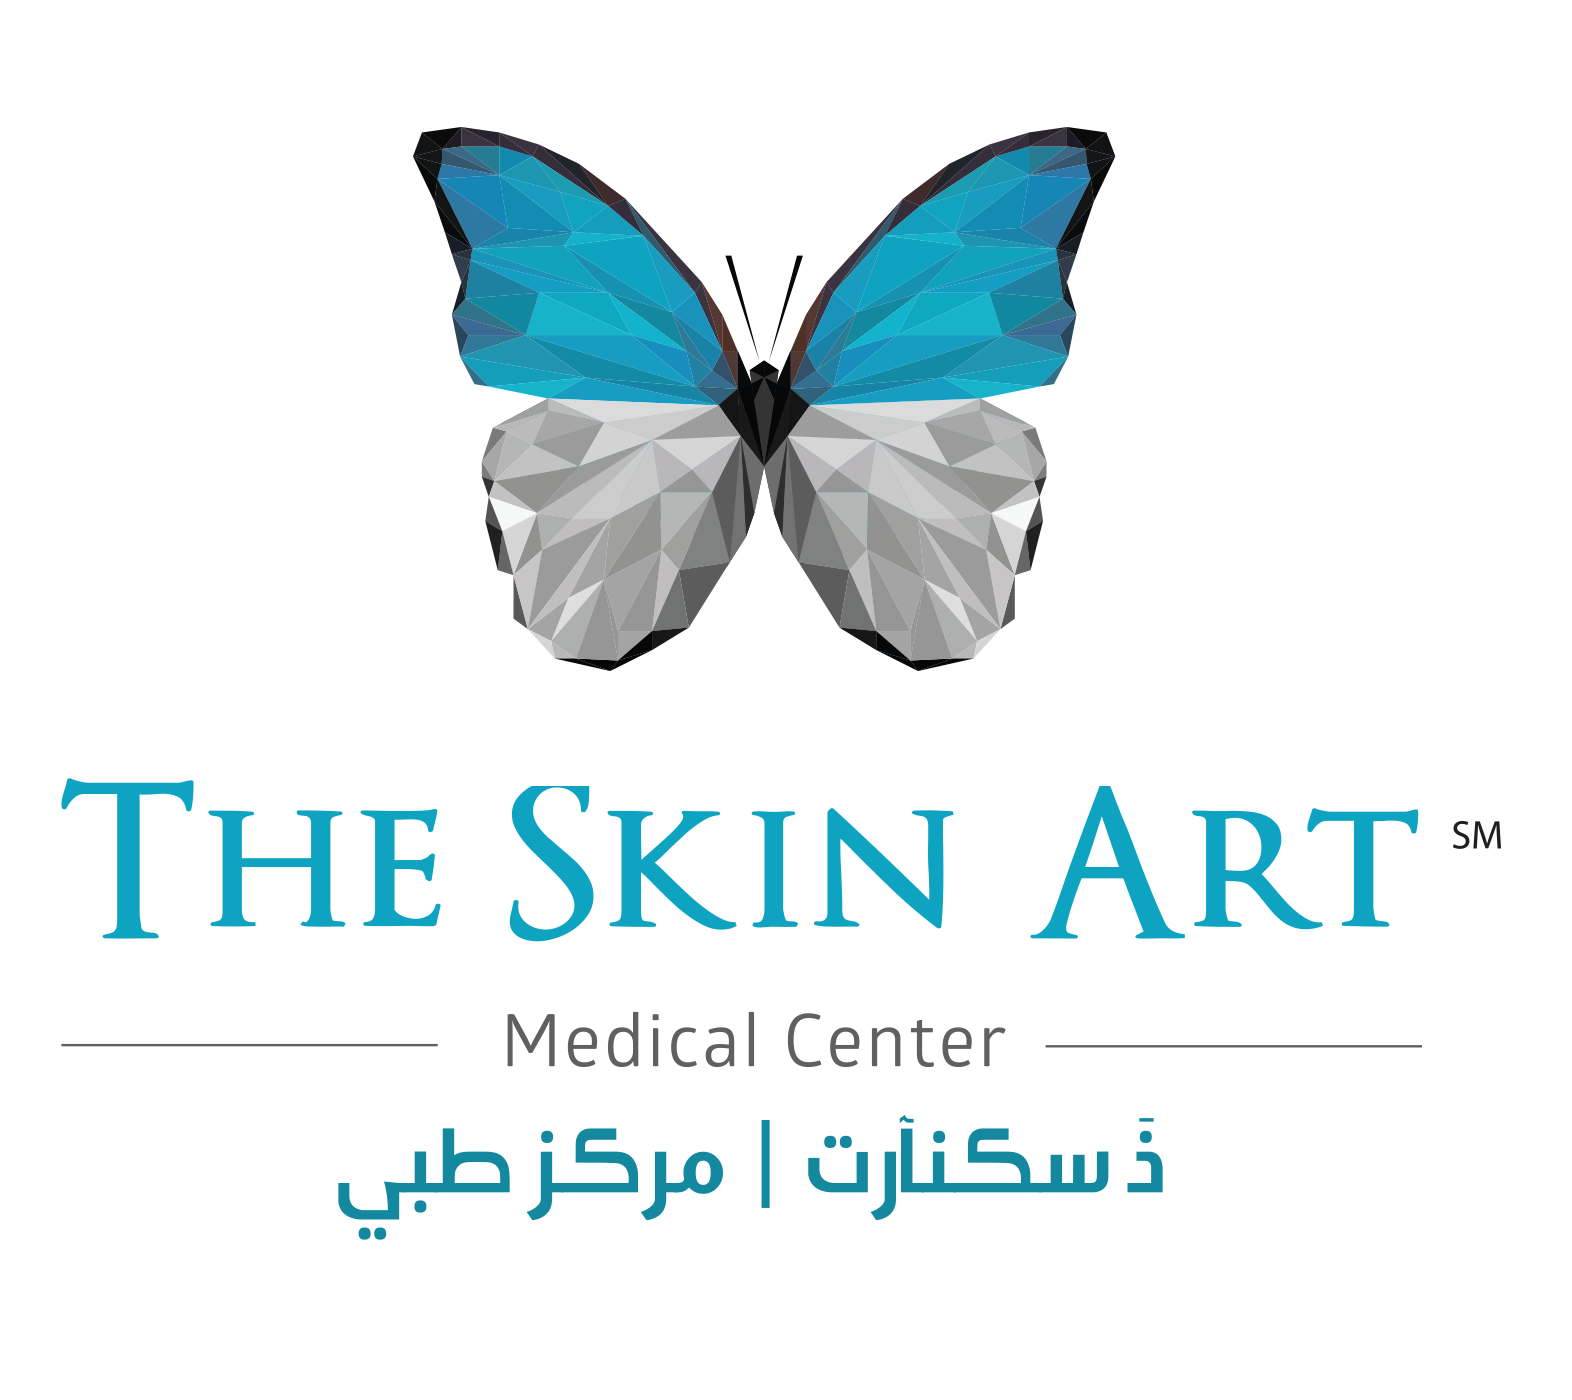 The Skin Art Medical Center